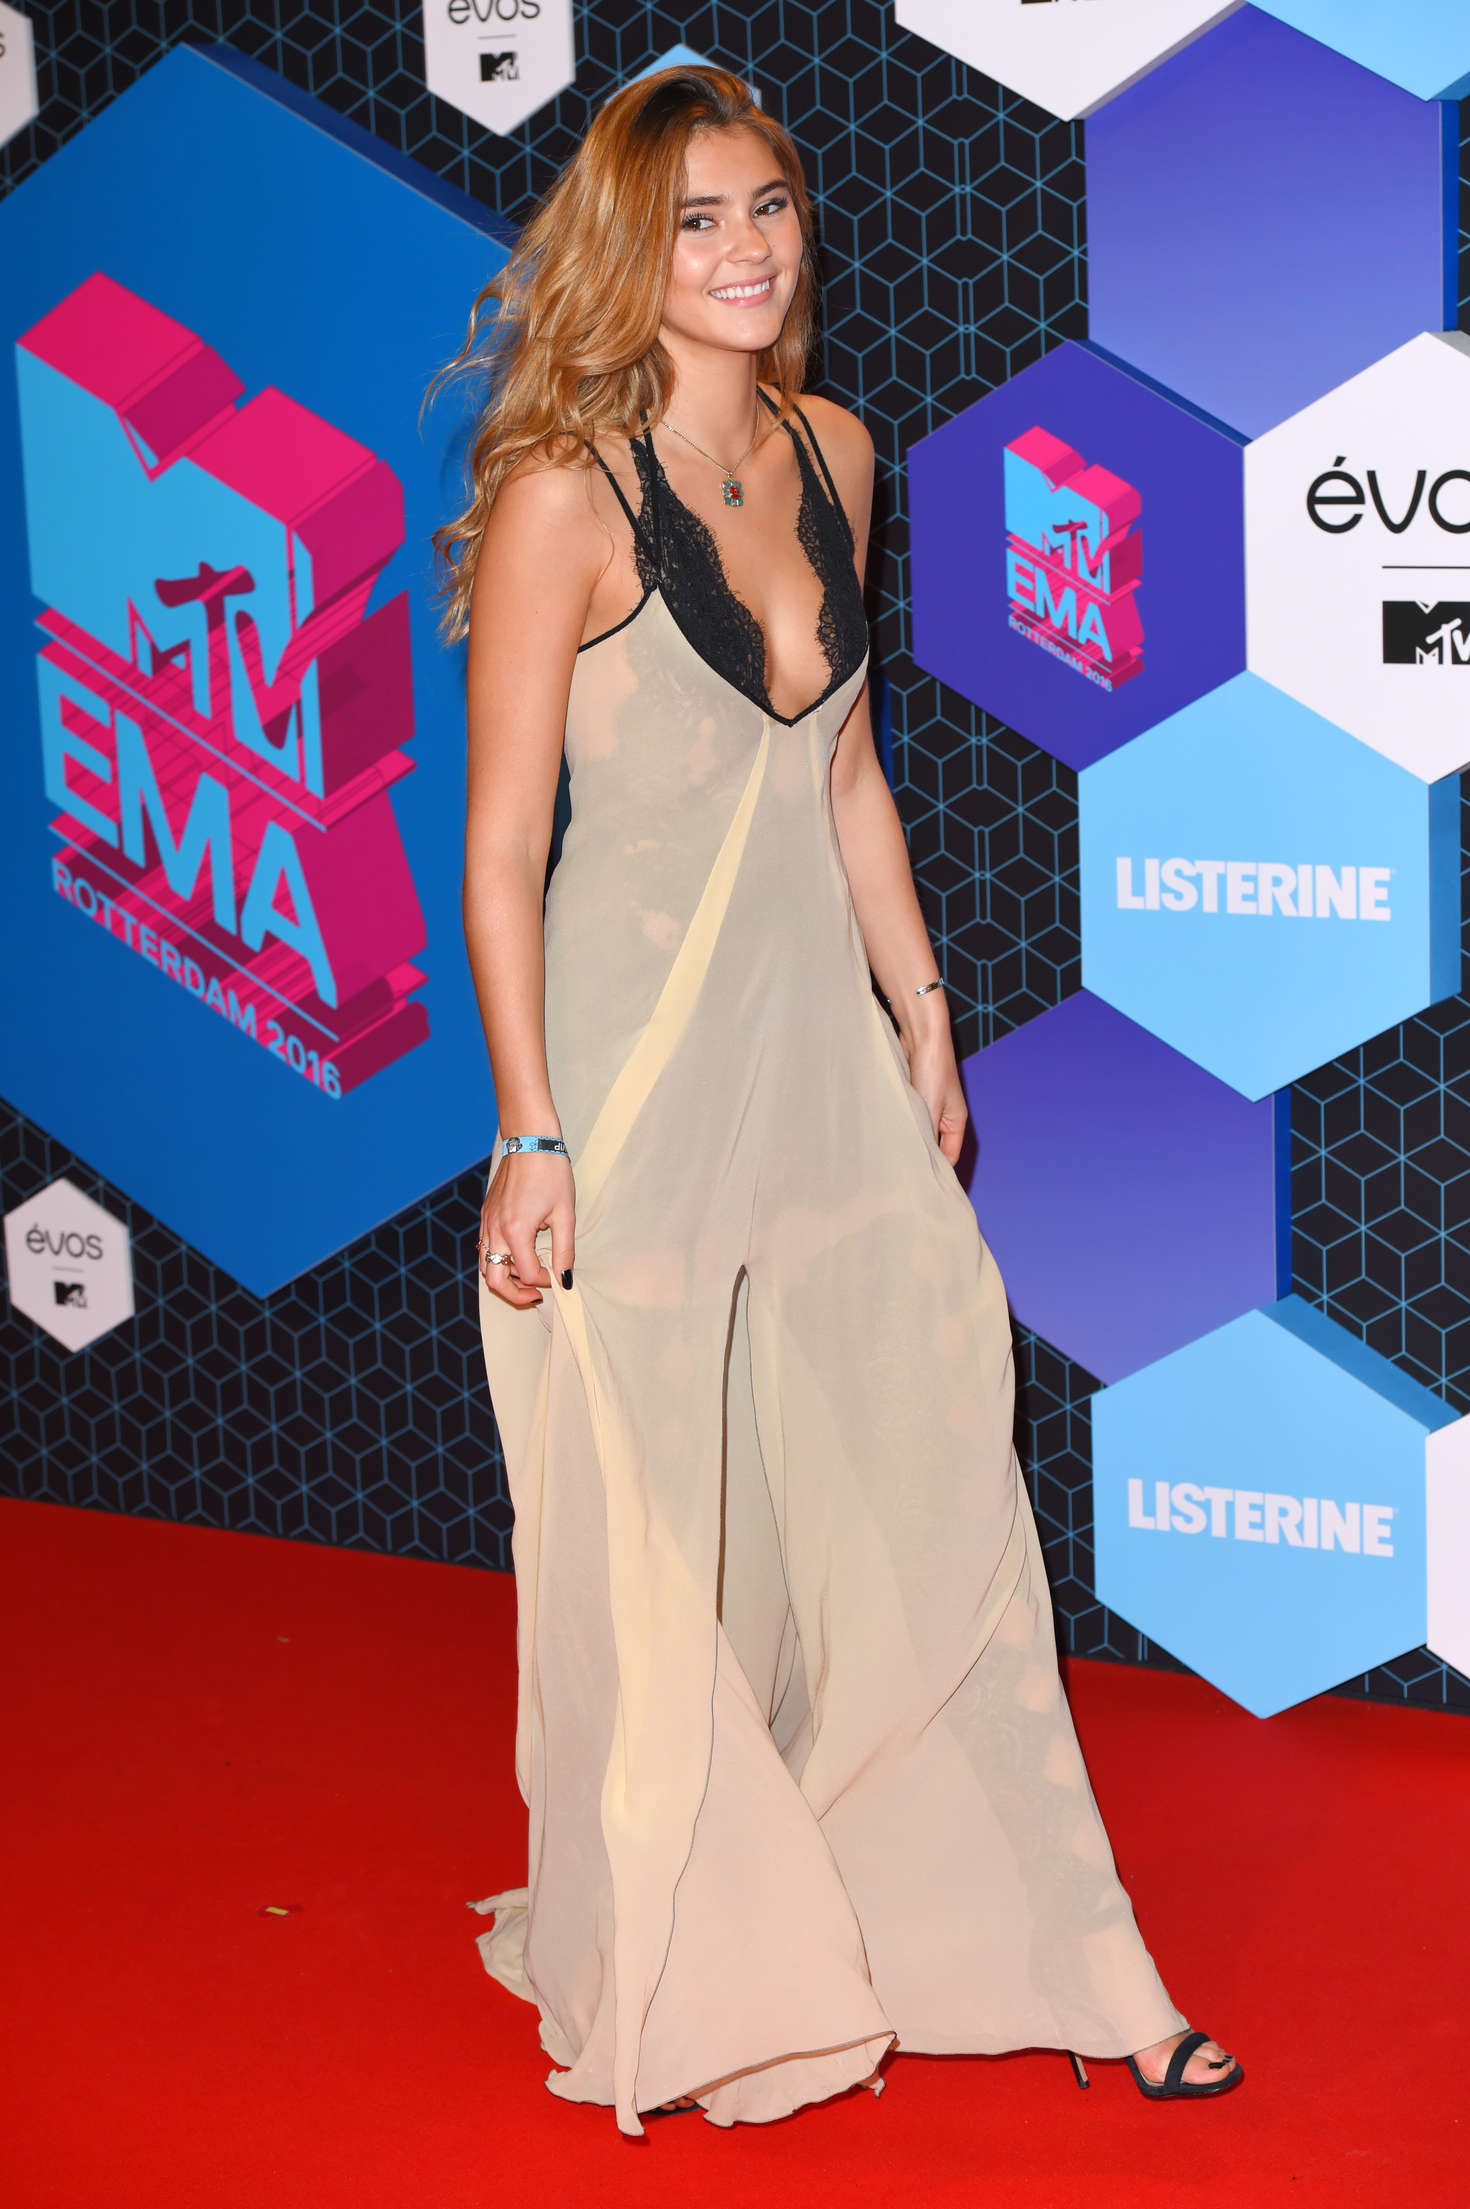 Stefanie Giesinger 2016 MTV Europe Music Awards In Rotterdam